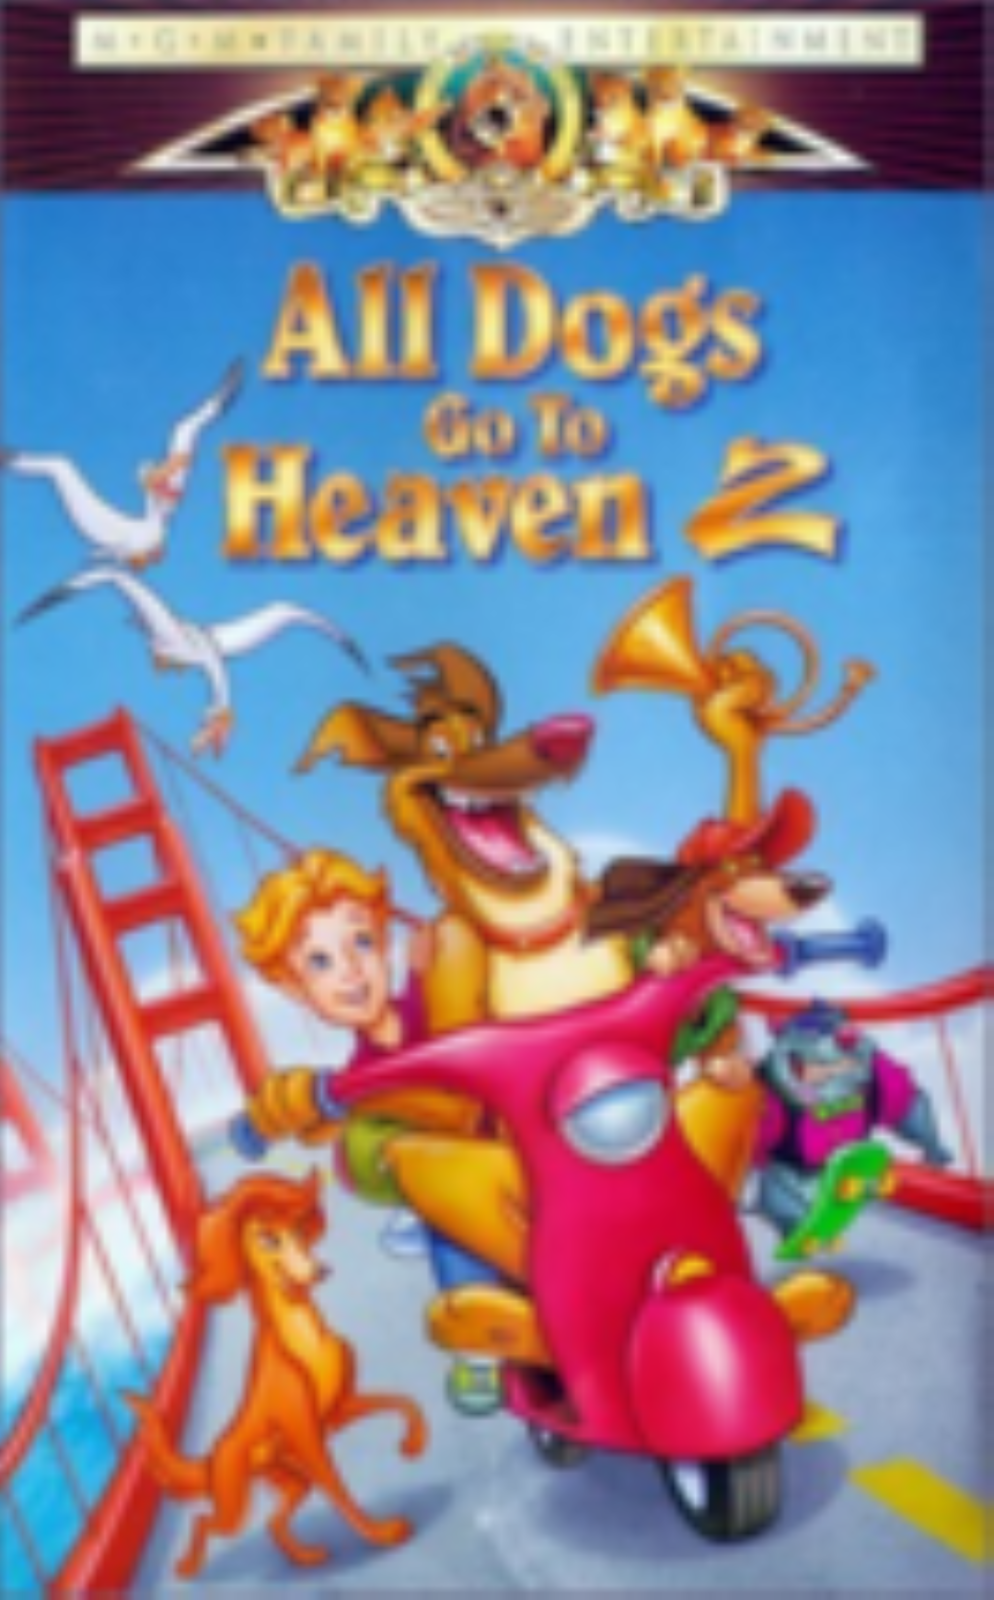 All Dogs Go to Heaven 2 Vhs